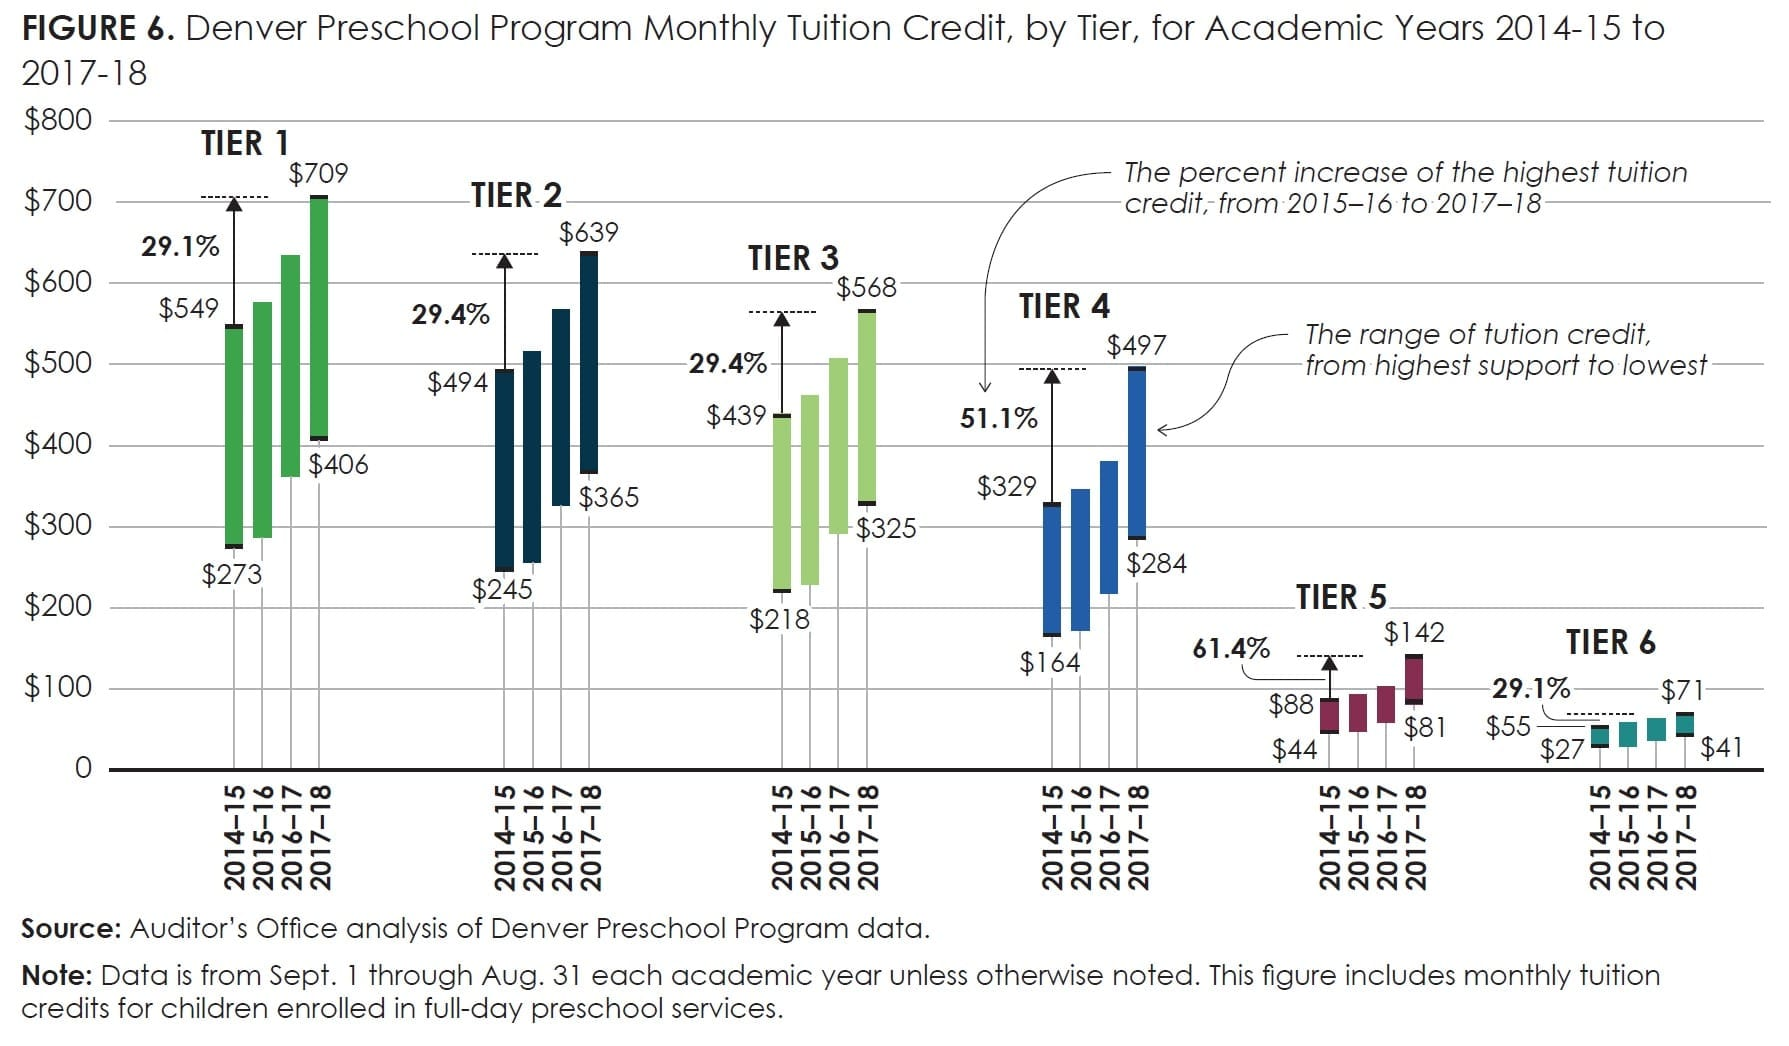 Figure6_Denver Preschool Program Monthly Tuition Credit, by Tier, for Academic Years 2014-15 to 2017-18